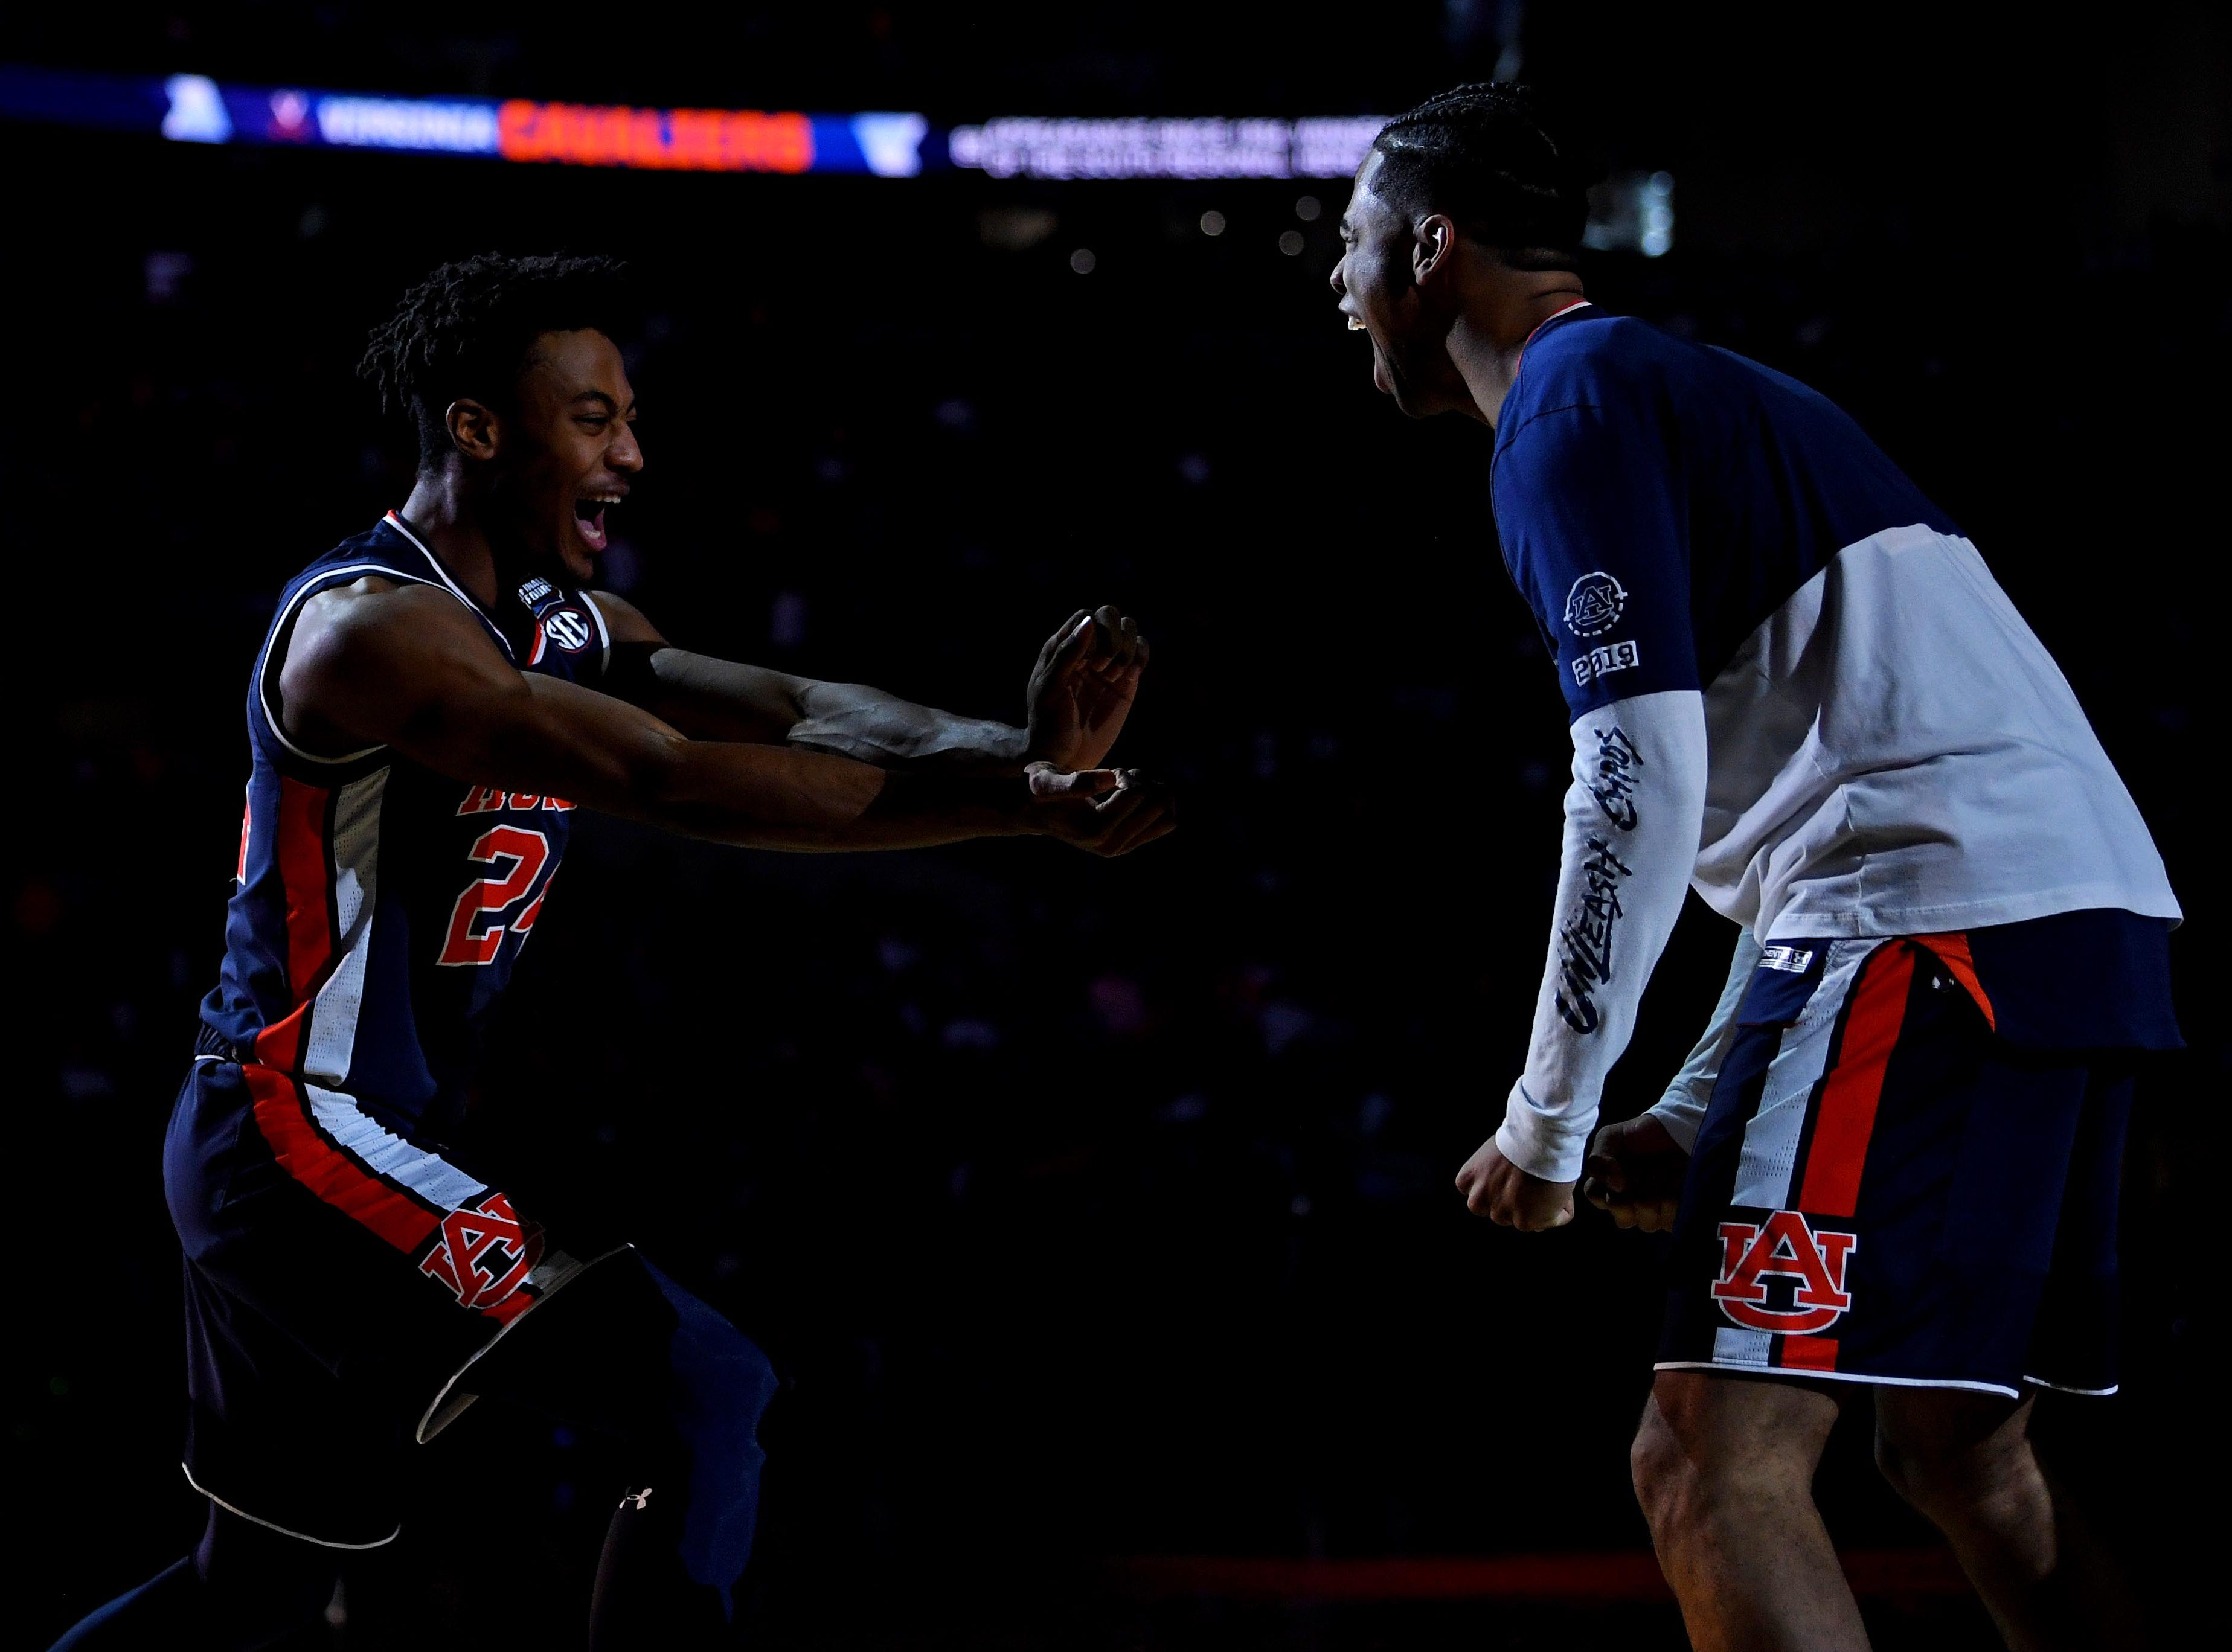 Auburn Tigers forward Anfernee McLemore (24) is introduced before the game against the Virginia Cavaliers.